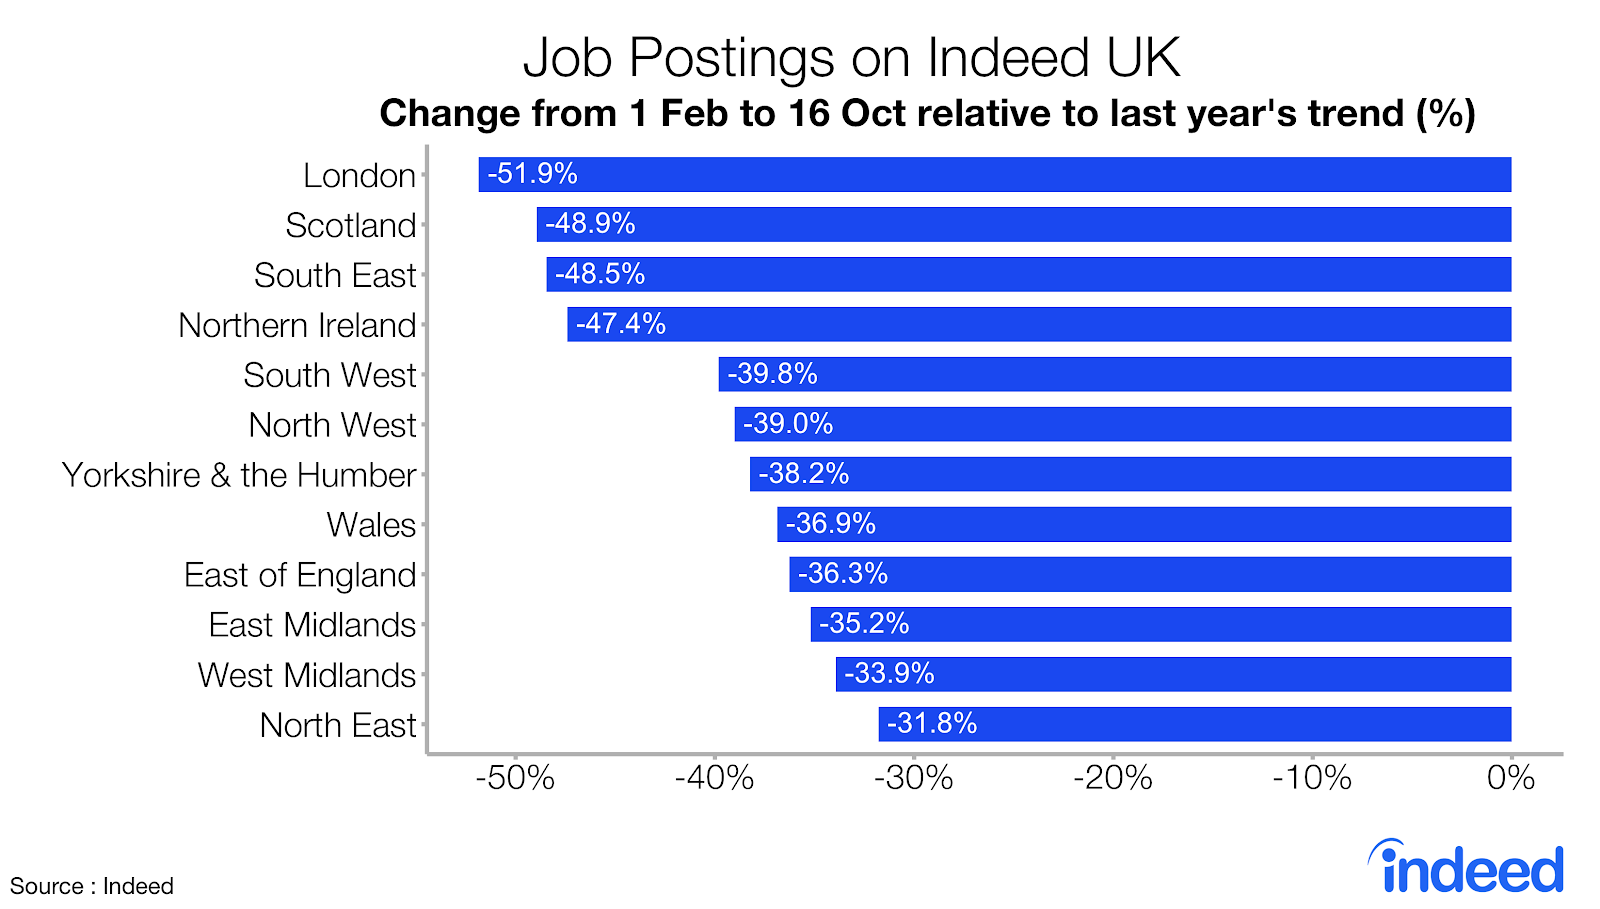 Bar graph showing job postings on Indeed UK by city